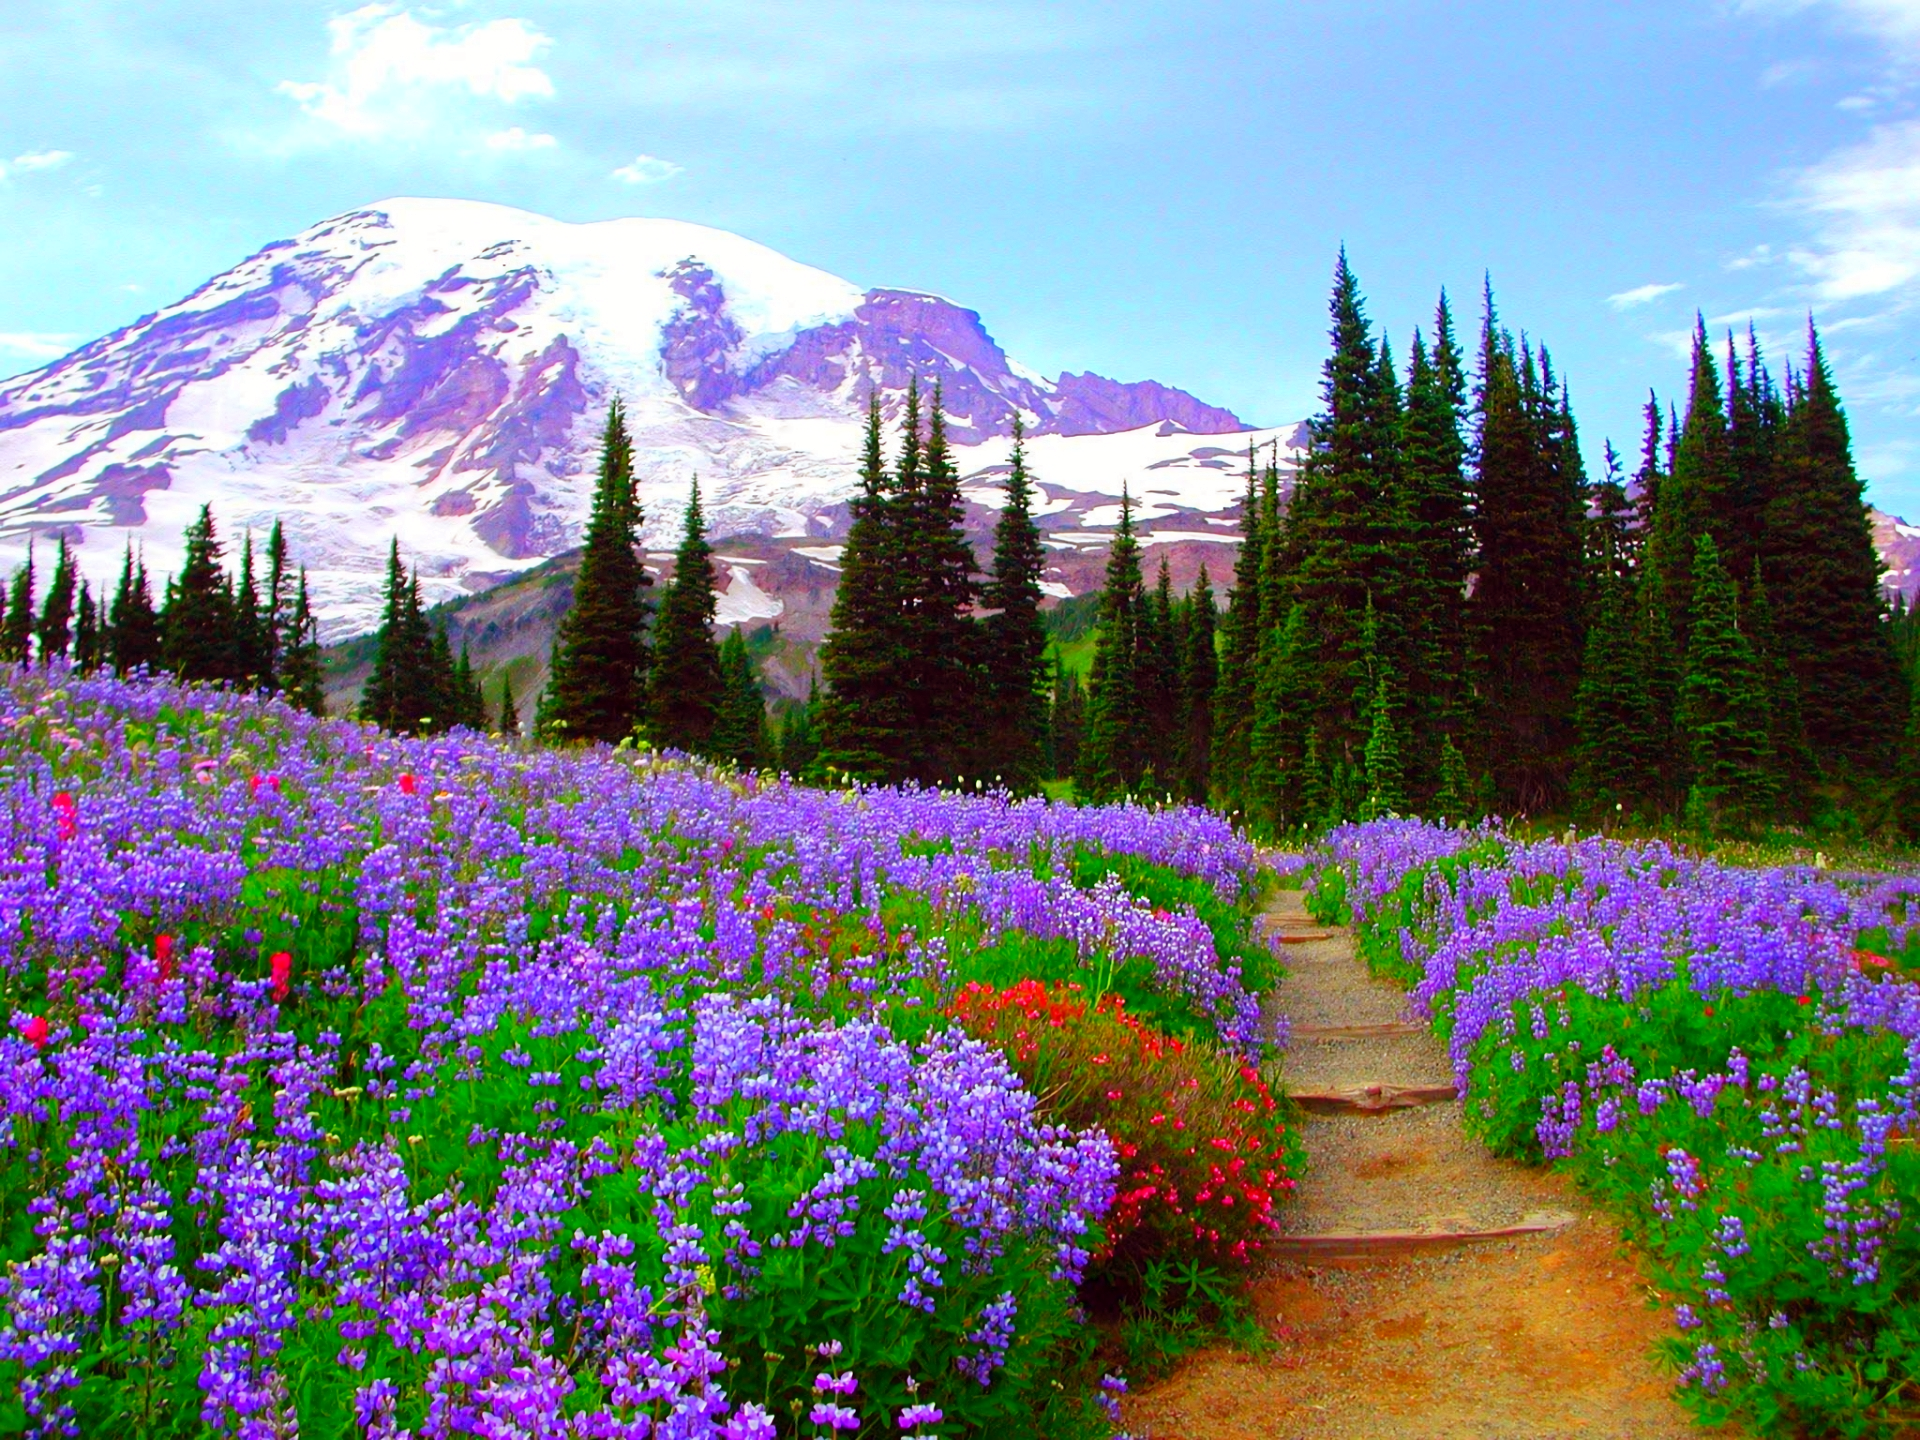 Flower Field in the Mountains